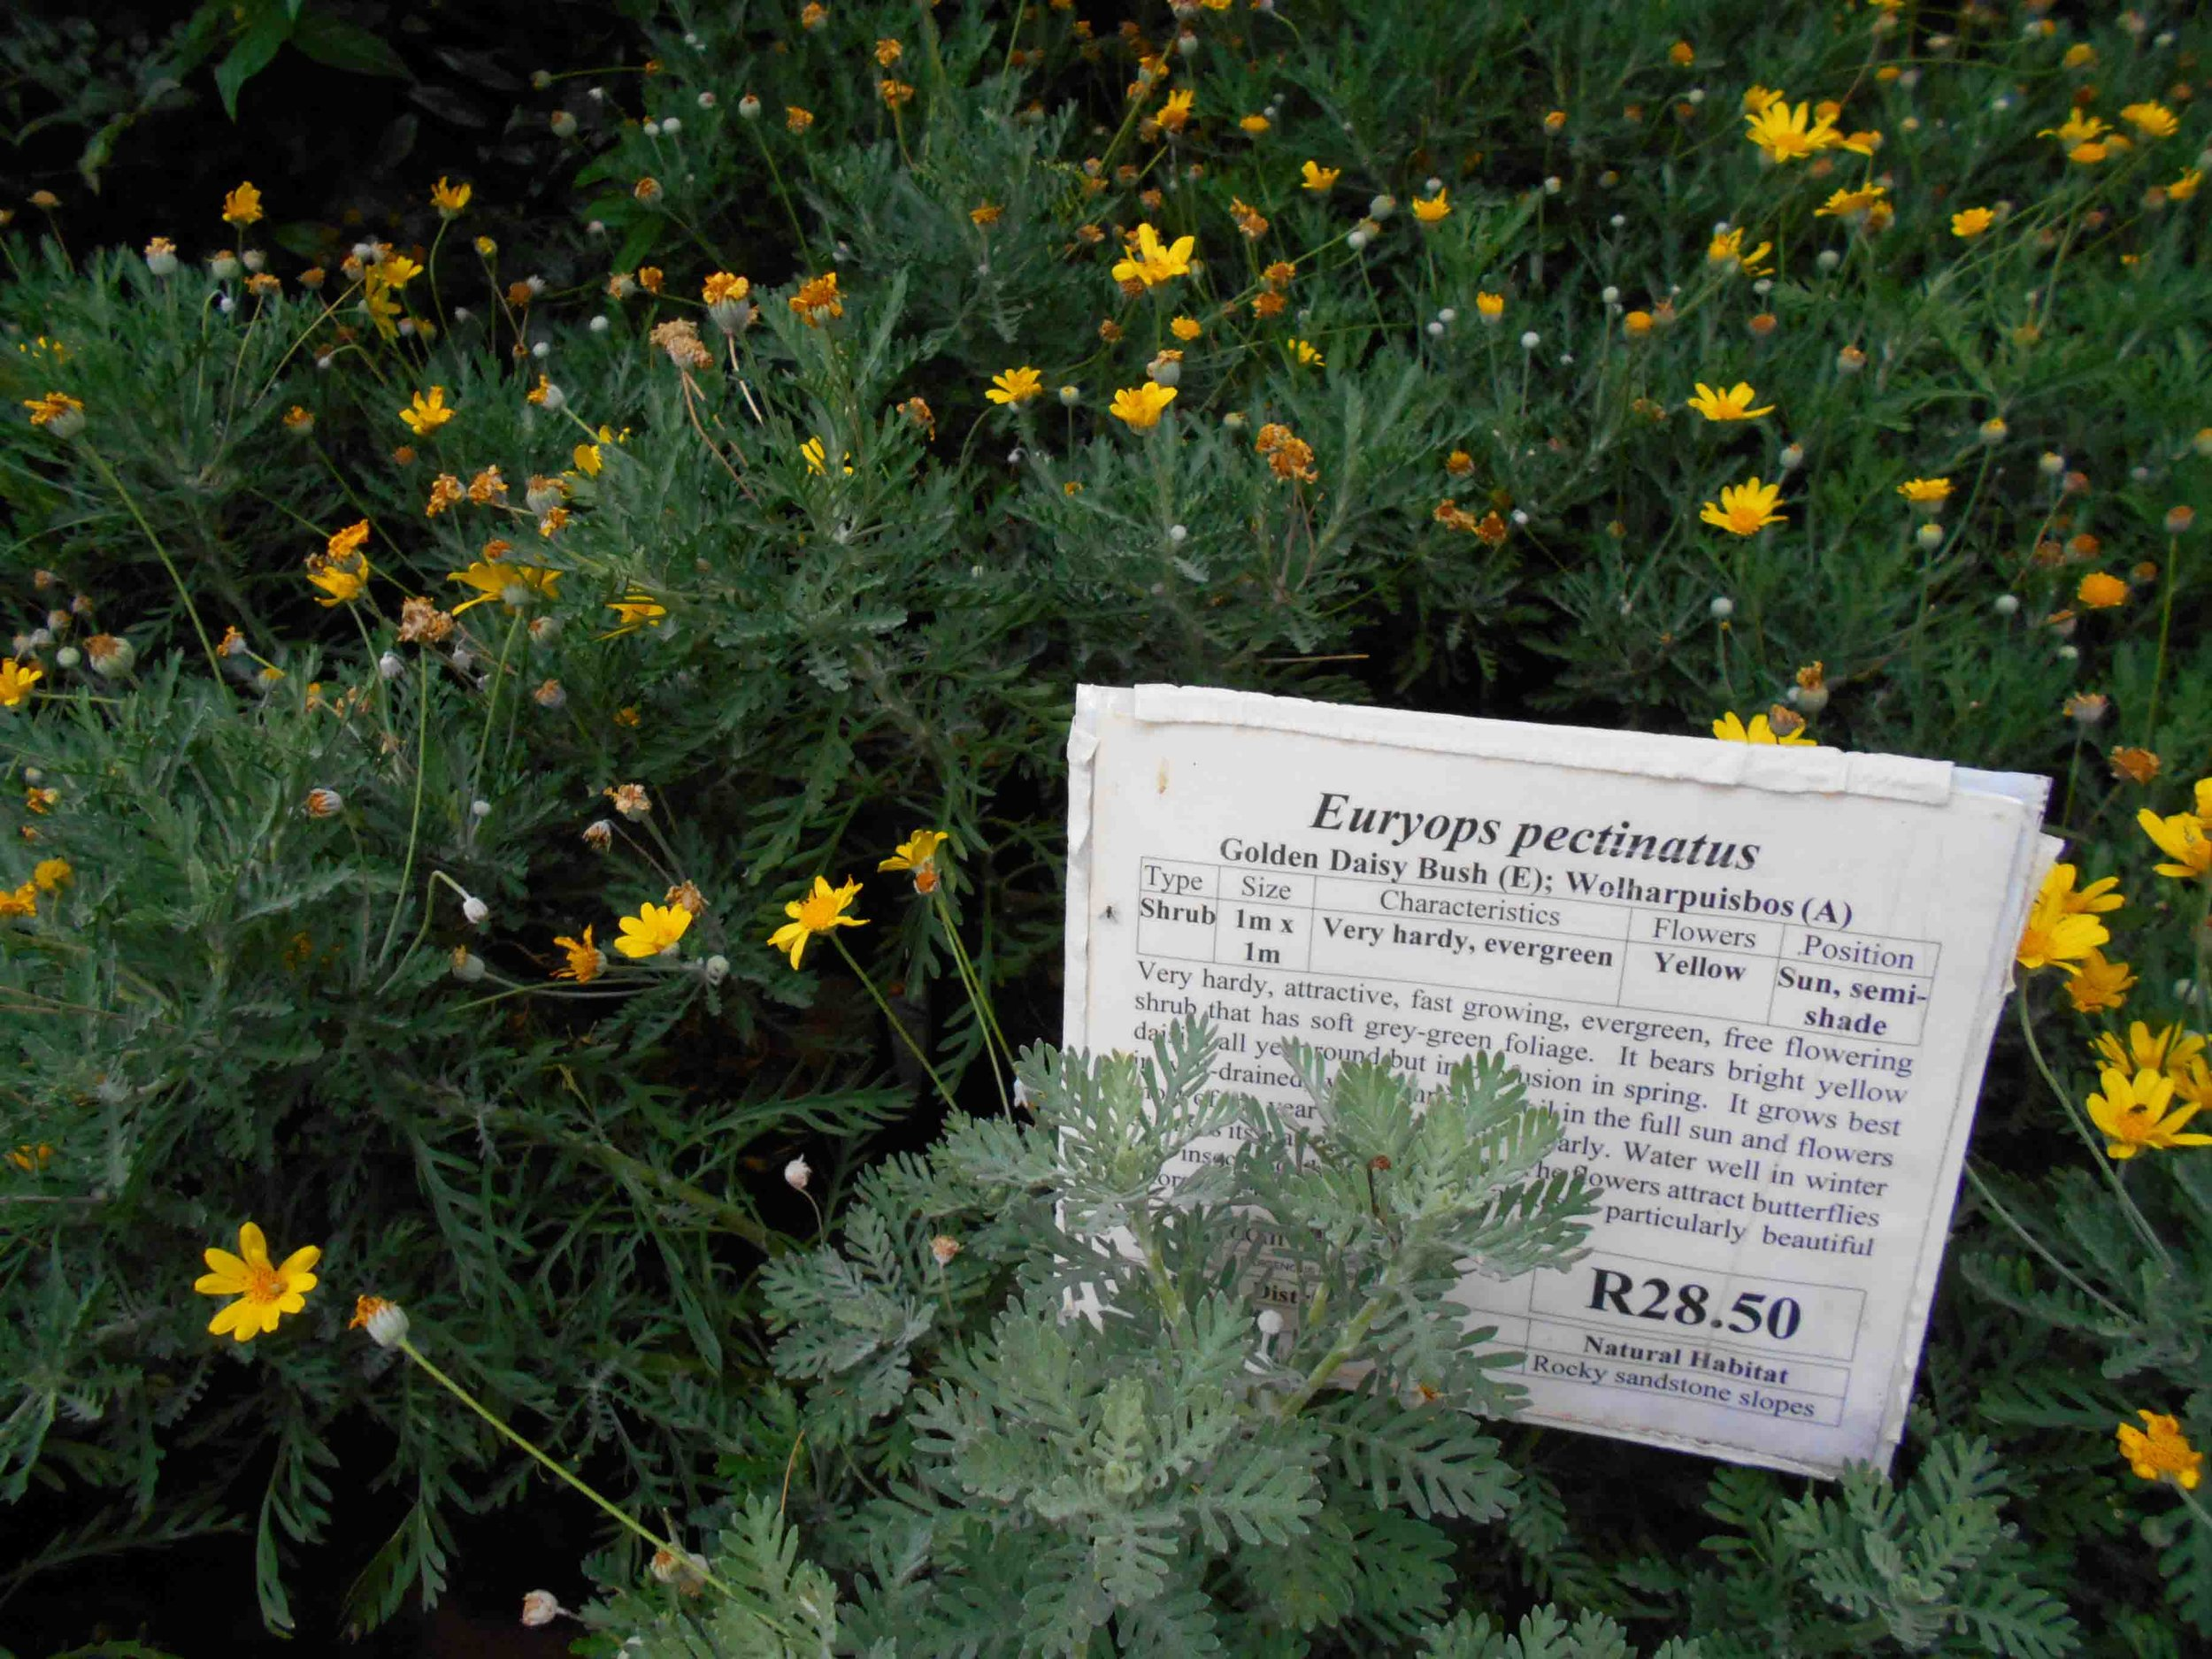 Euryops pectinatus - Golden Daisy Bush. Grey-Green Foliage